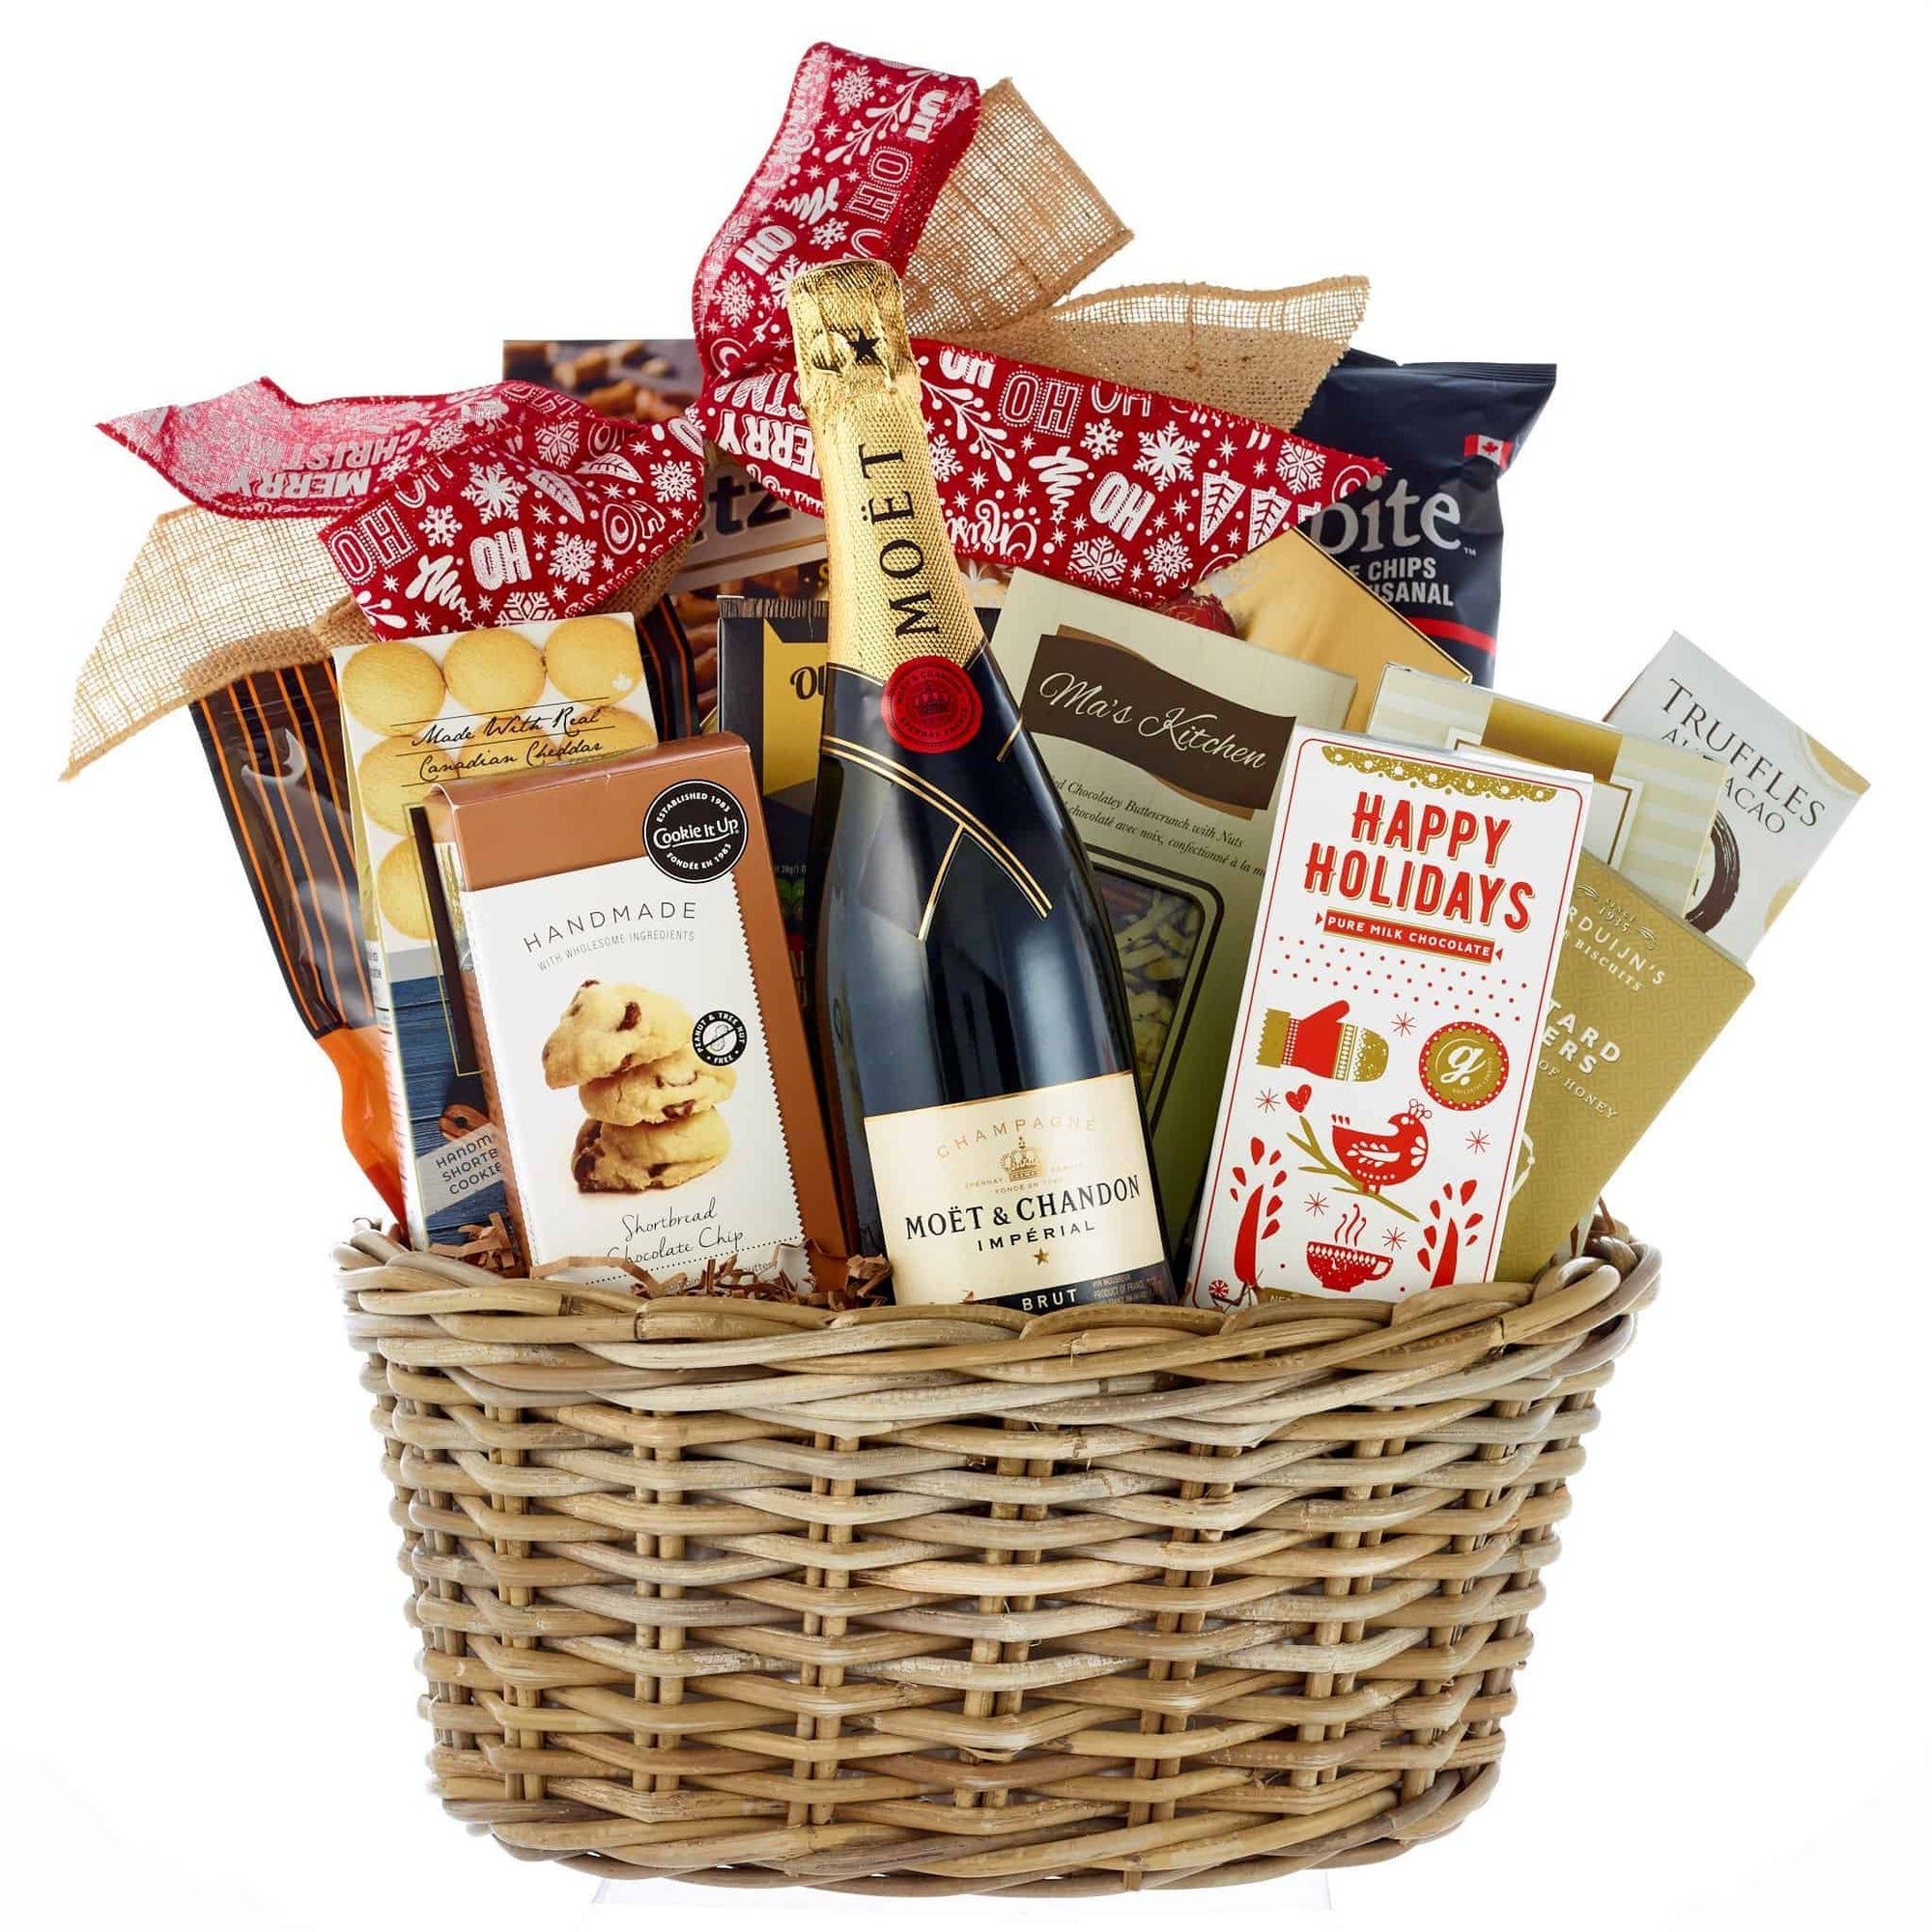 Christmas holiday gift basket with Moet and Chandon French Champagne.